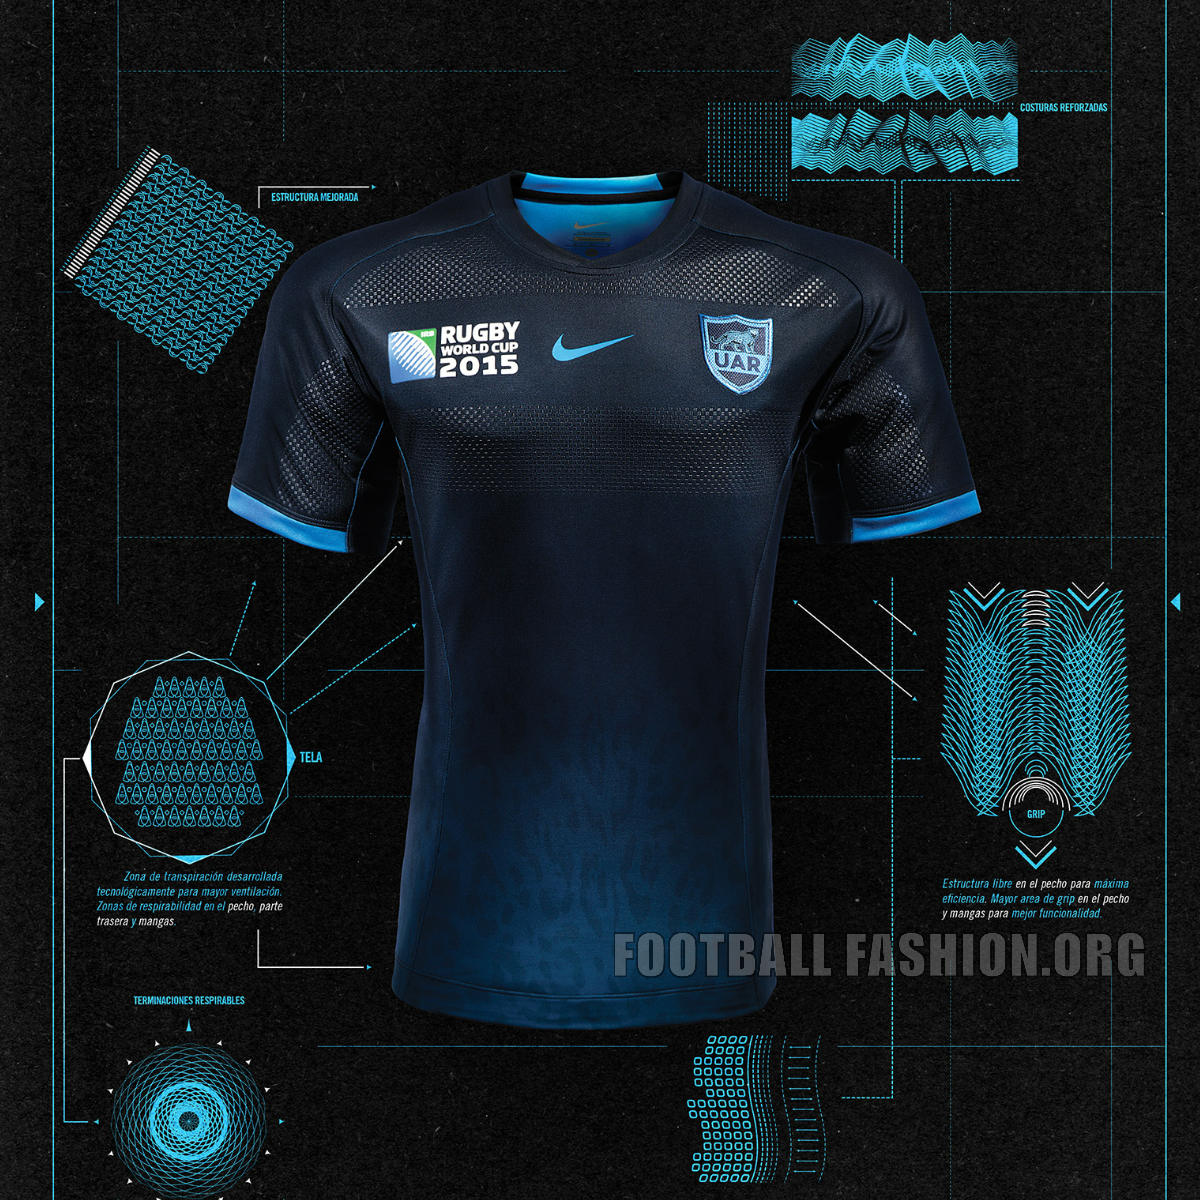 8843c5f171 Argentina 2015 Rugby World Cup Nike Home and Away Jerseys – FOOTBALL ...